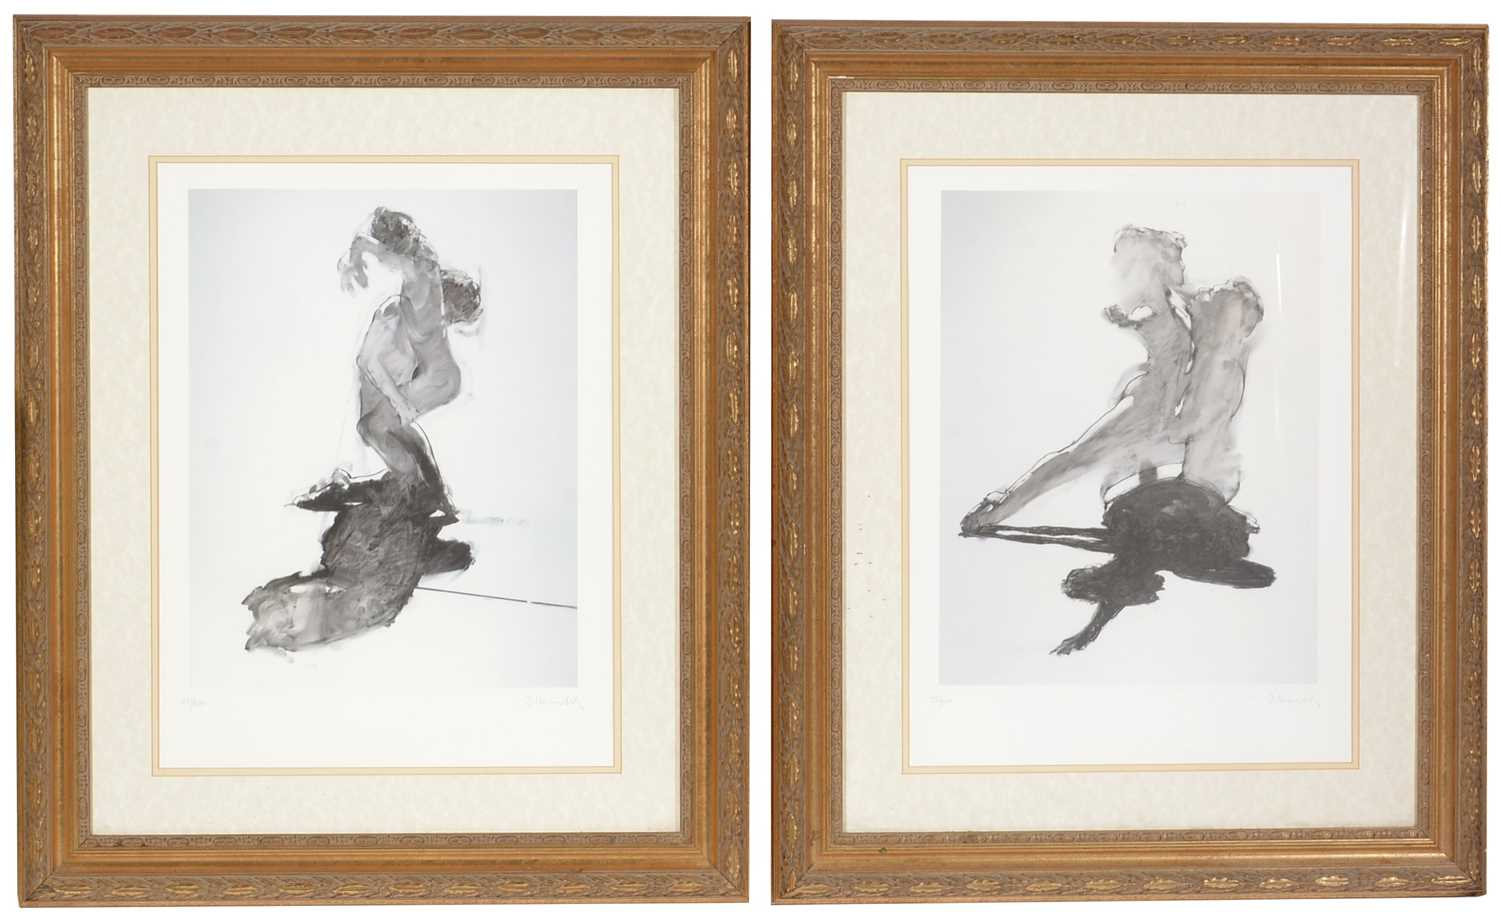 Lot 639 - Robert Heindel - limited editions.